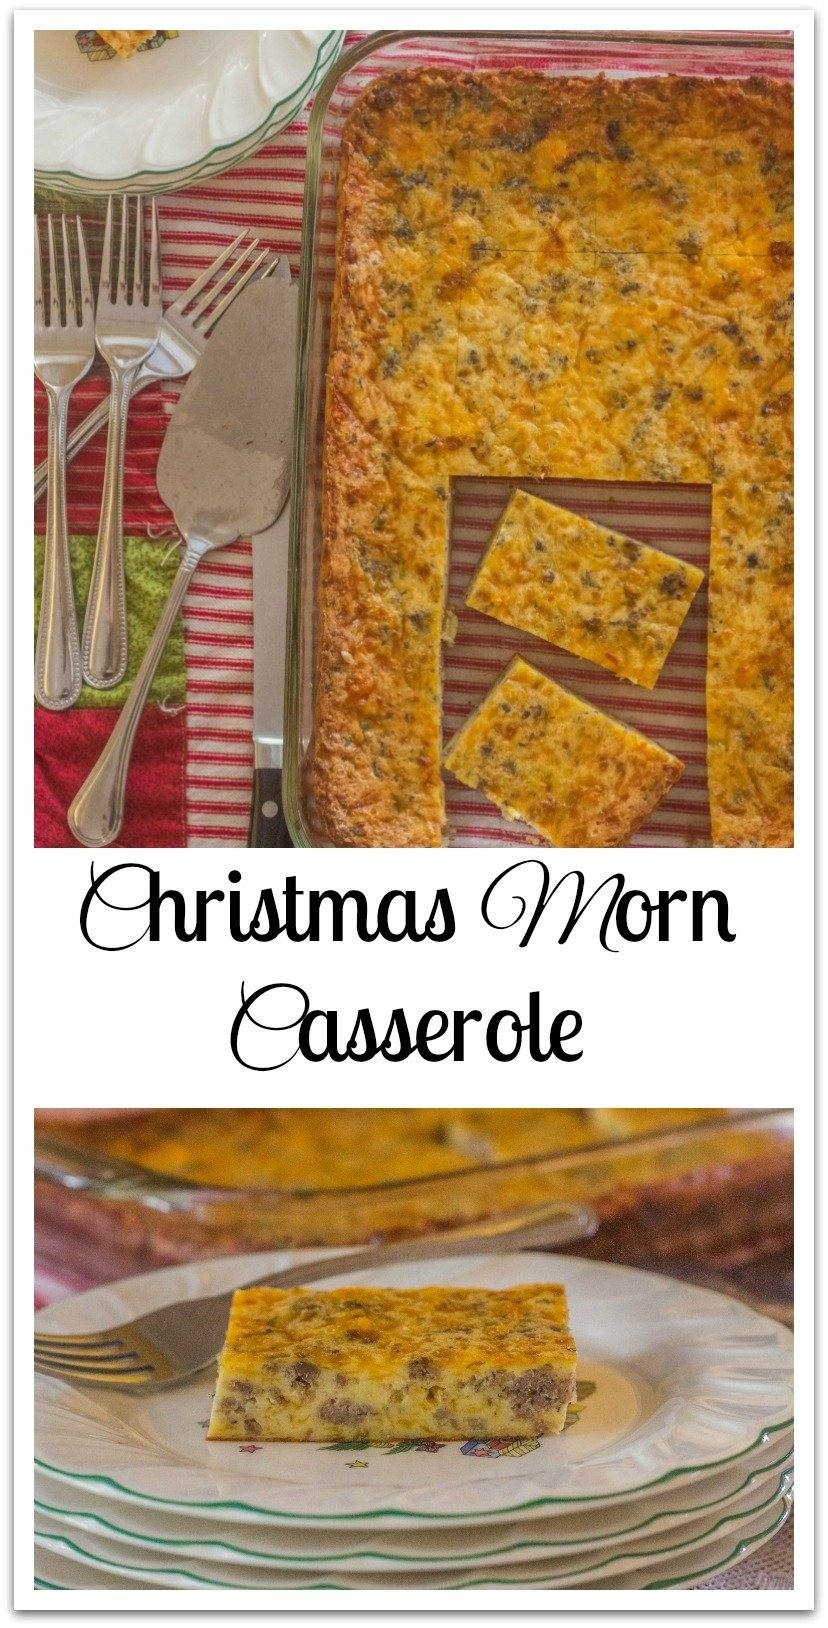 Christmas Morn Casserole is an egg, cheese, and sausage casserole that you make ahead and store in the fridge overnight. In the morning, simply bake it. No stress Christmas morning breakfast. #Christmas #Breakfast #SouthernCasserole